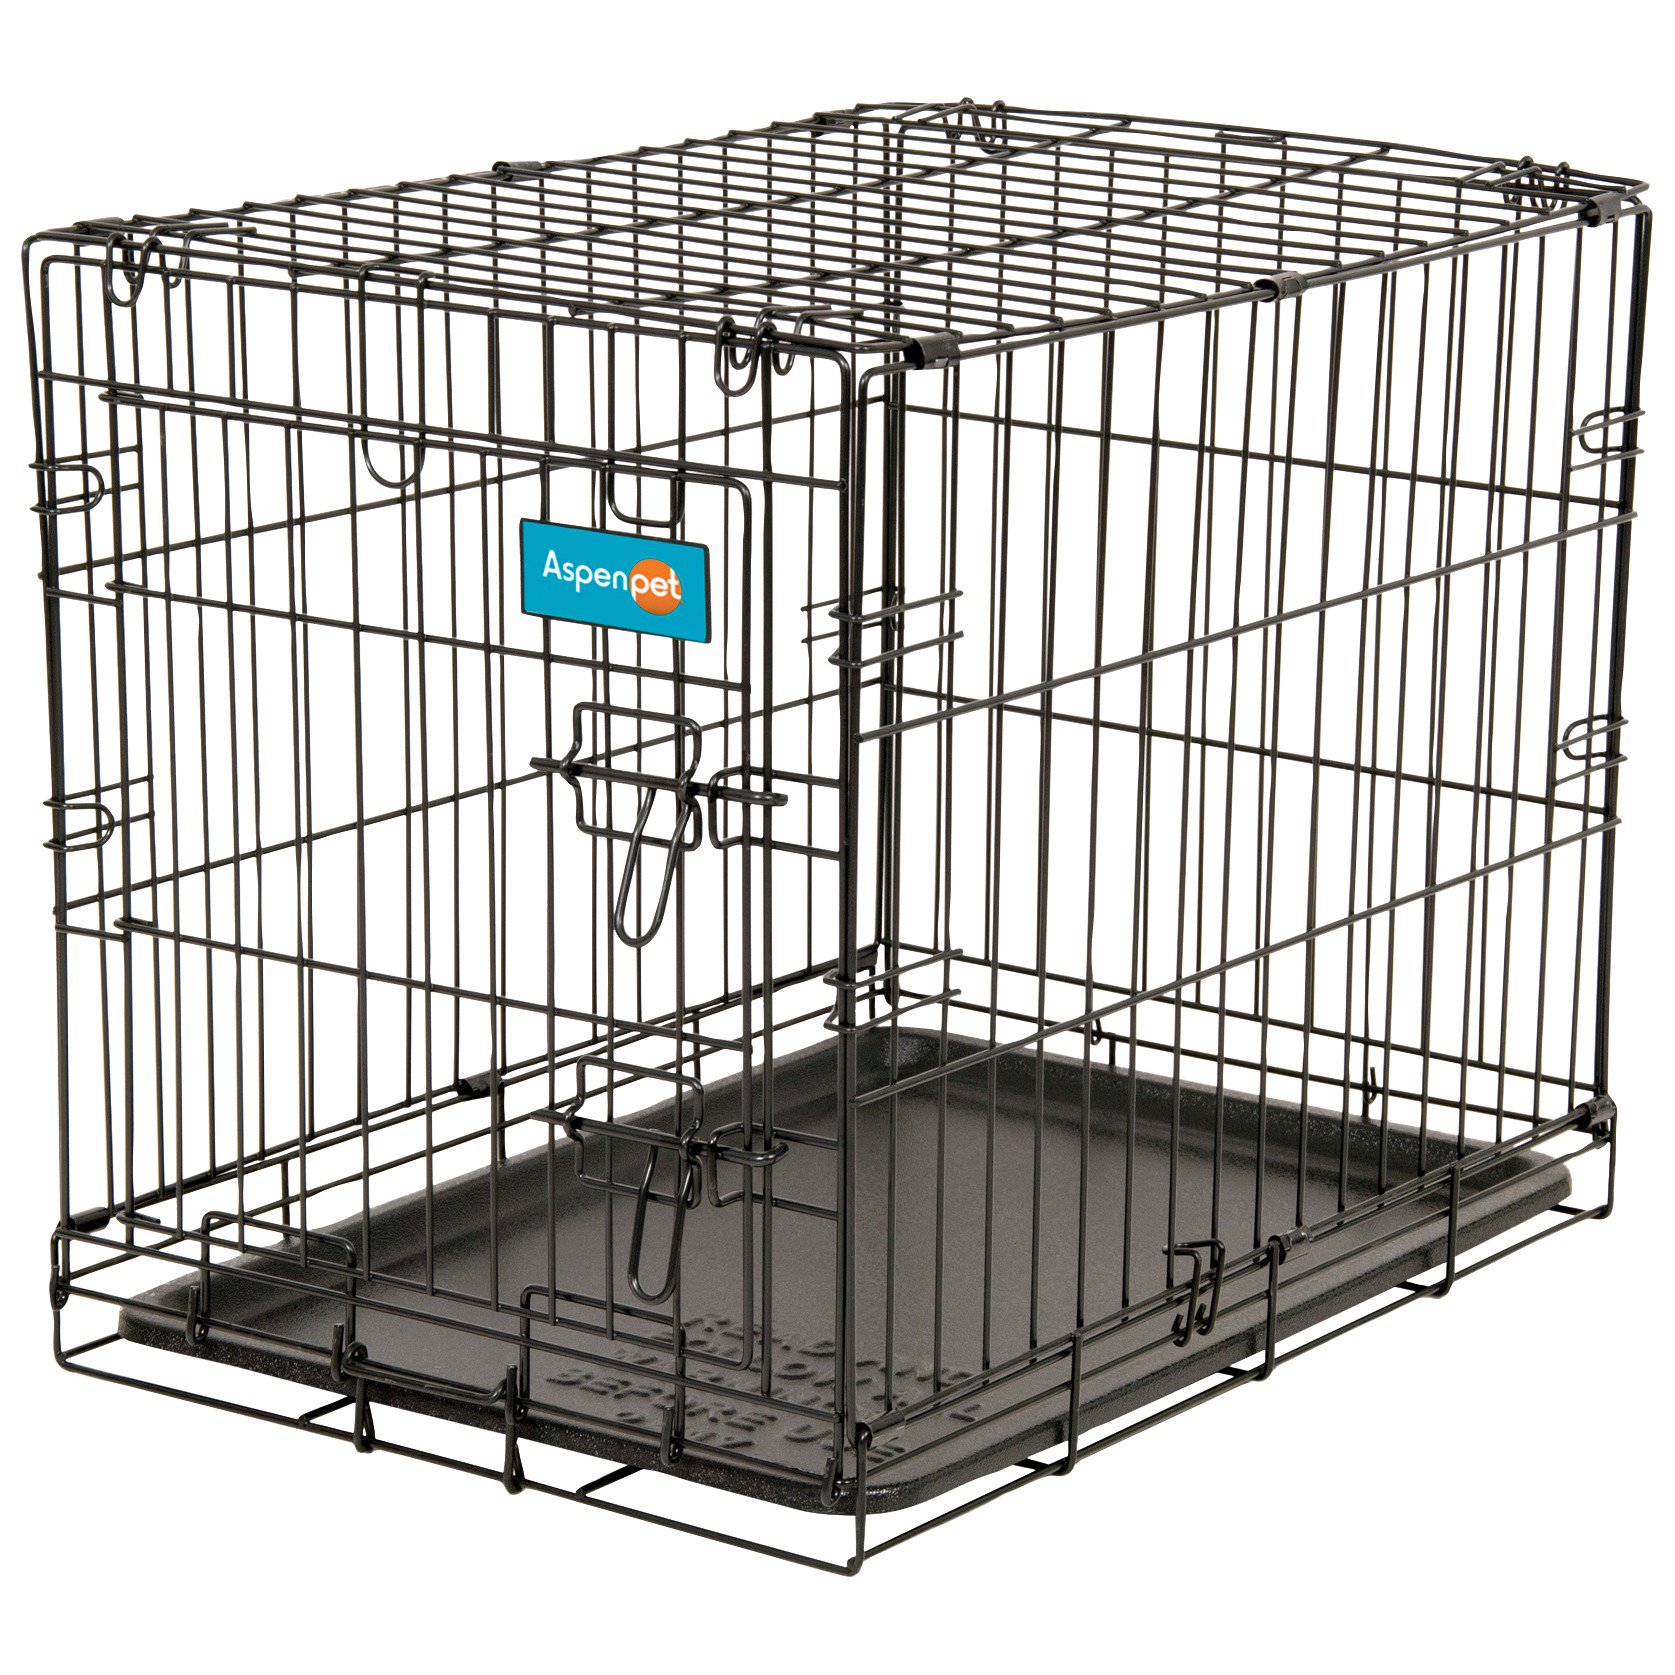 Aspen Pet Home Training Wire Up To 25 30 Lb Dog Kennel Shop Dogs At H E B